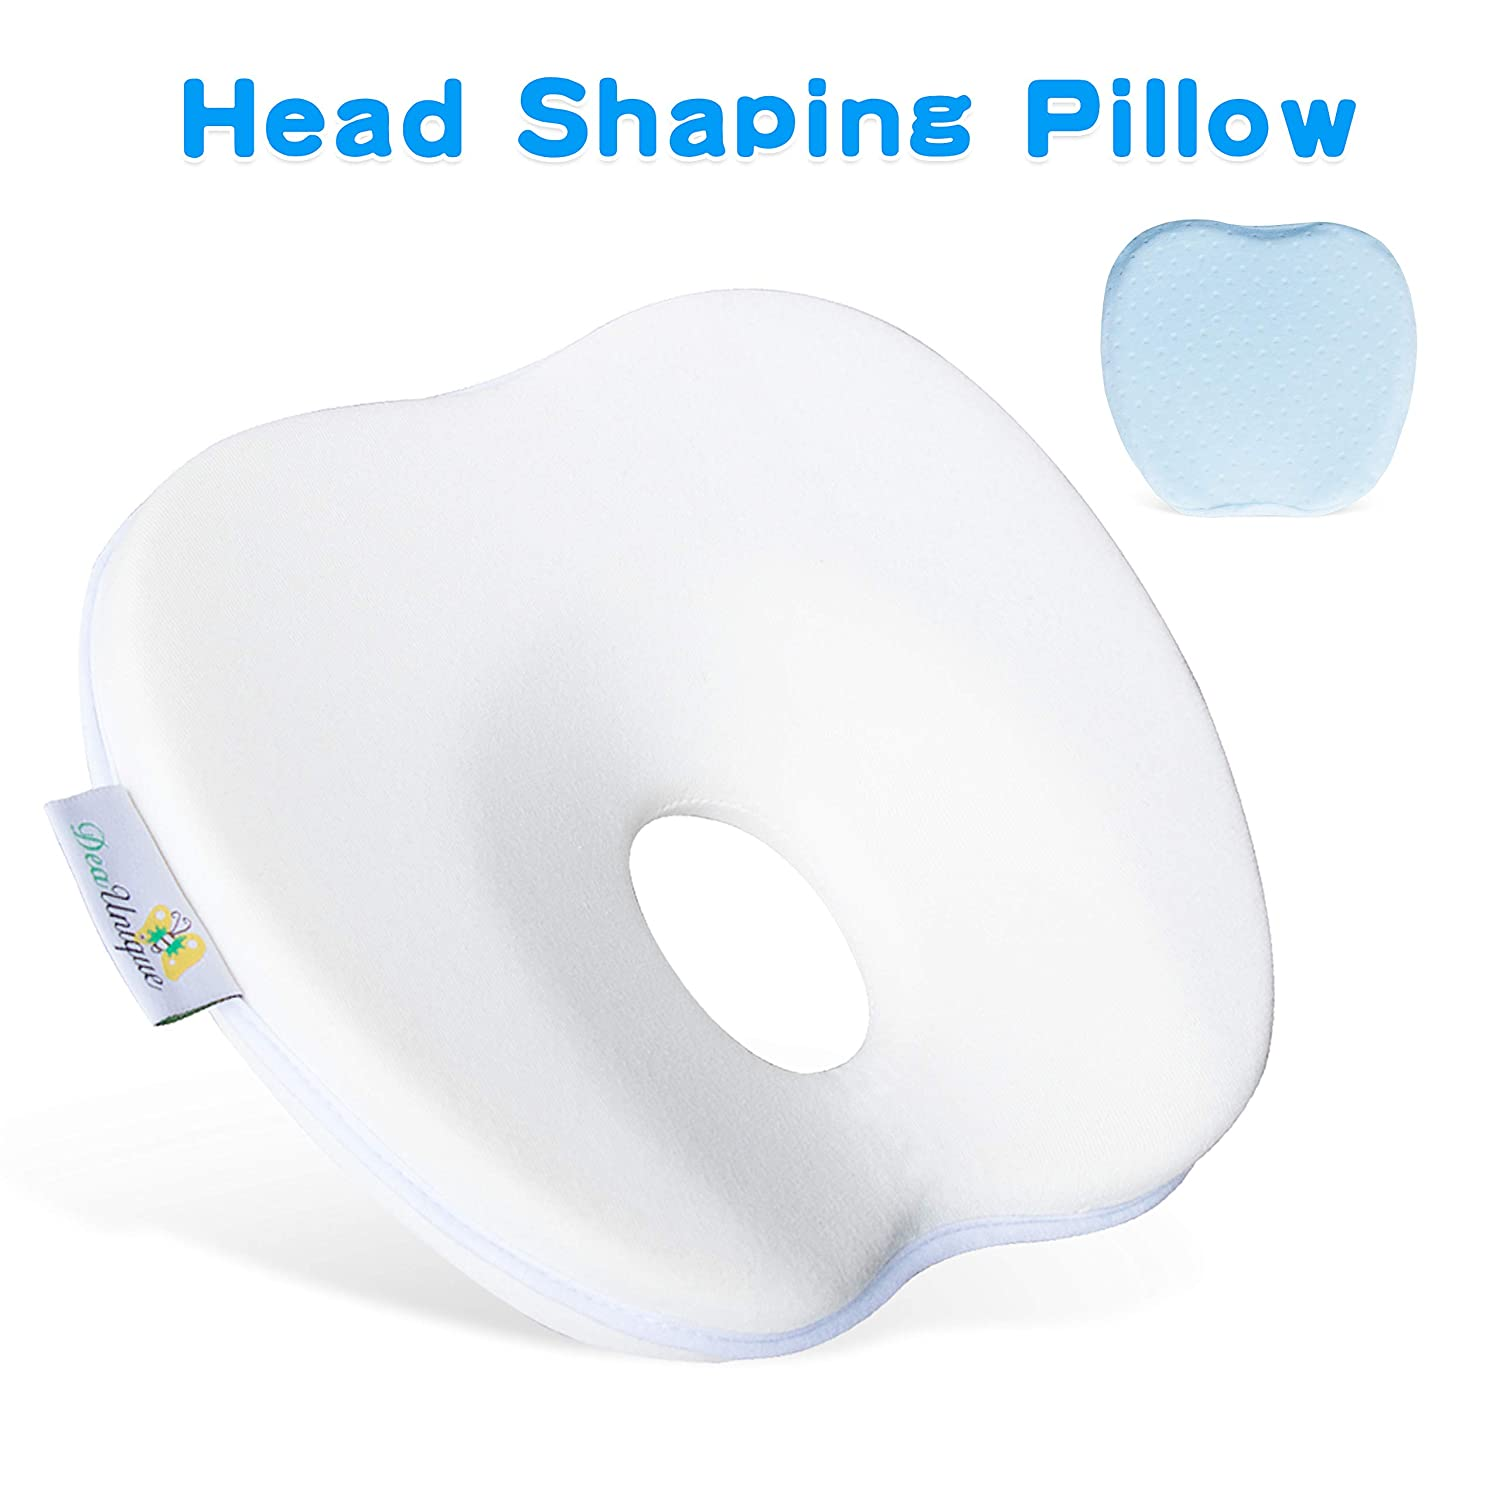 Wuayur Baby Pillow, Baby Memory Foam Cushion Prevent Flat Head Plagiocephaly Head Shaping Pillow Support for Safe Sleeping in Crib for Newborn/Infant/ Girl/Boy